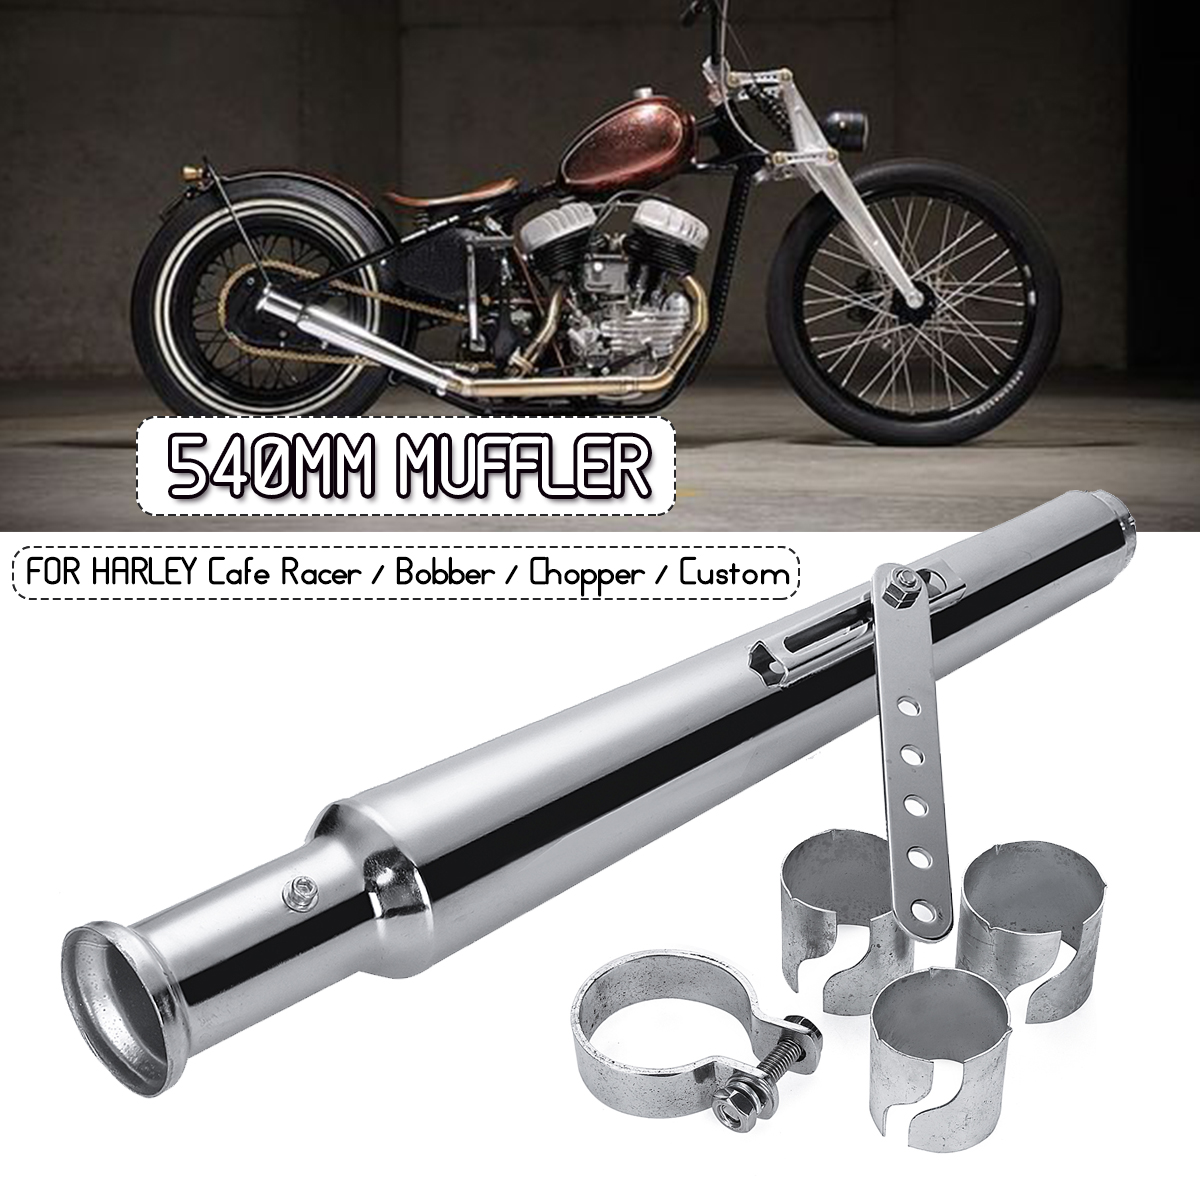 540MM Motorcycle Retro Tail Exhaust Pipe Muffler Silencer For Harley Cafe Racer Bobber Chopper Custom540MM Motorcycle Retro Tail Exhaust Pipe Muffler Silencer For Harley Cafe Racer Bobber Chopper Custom